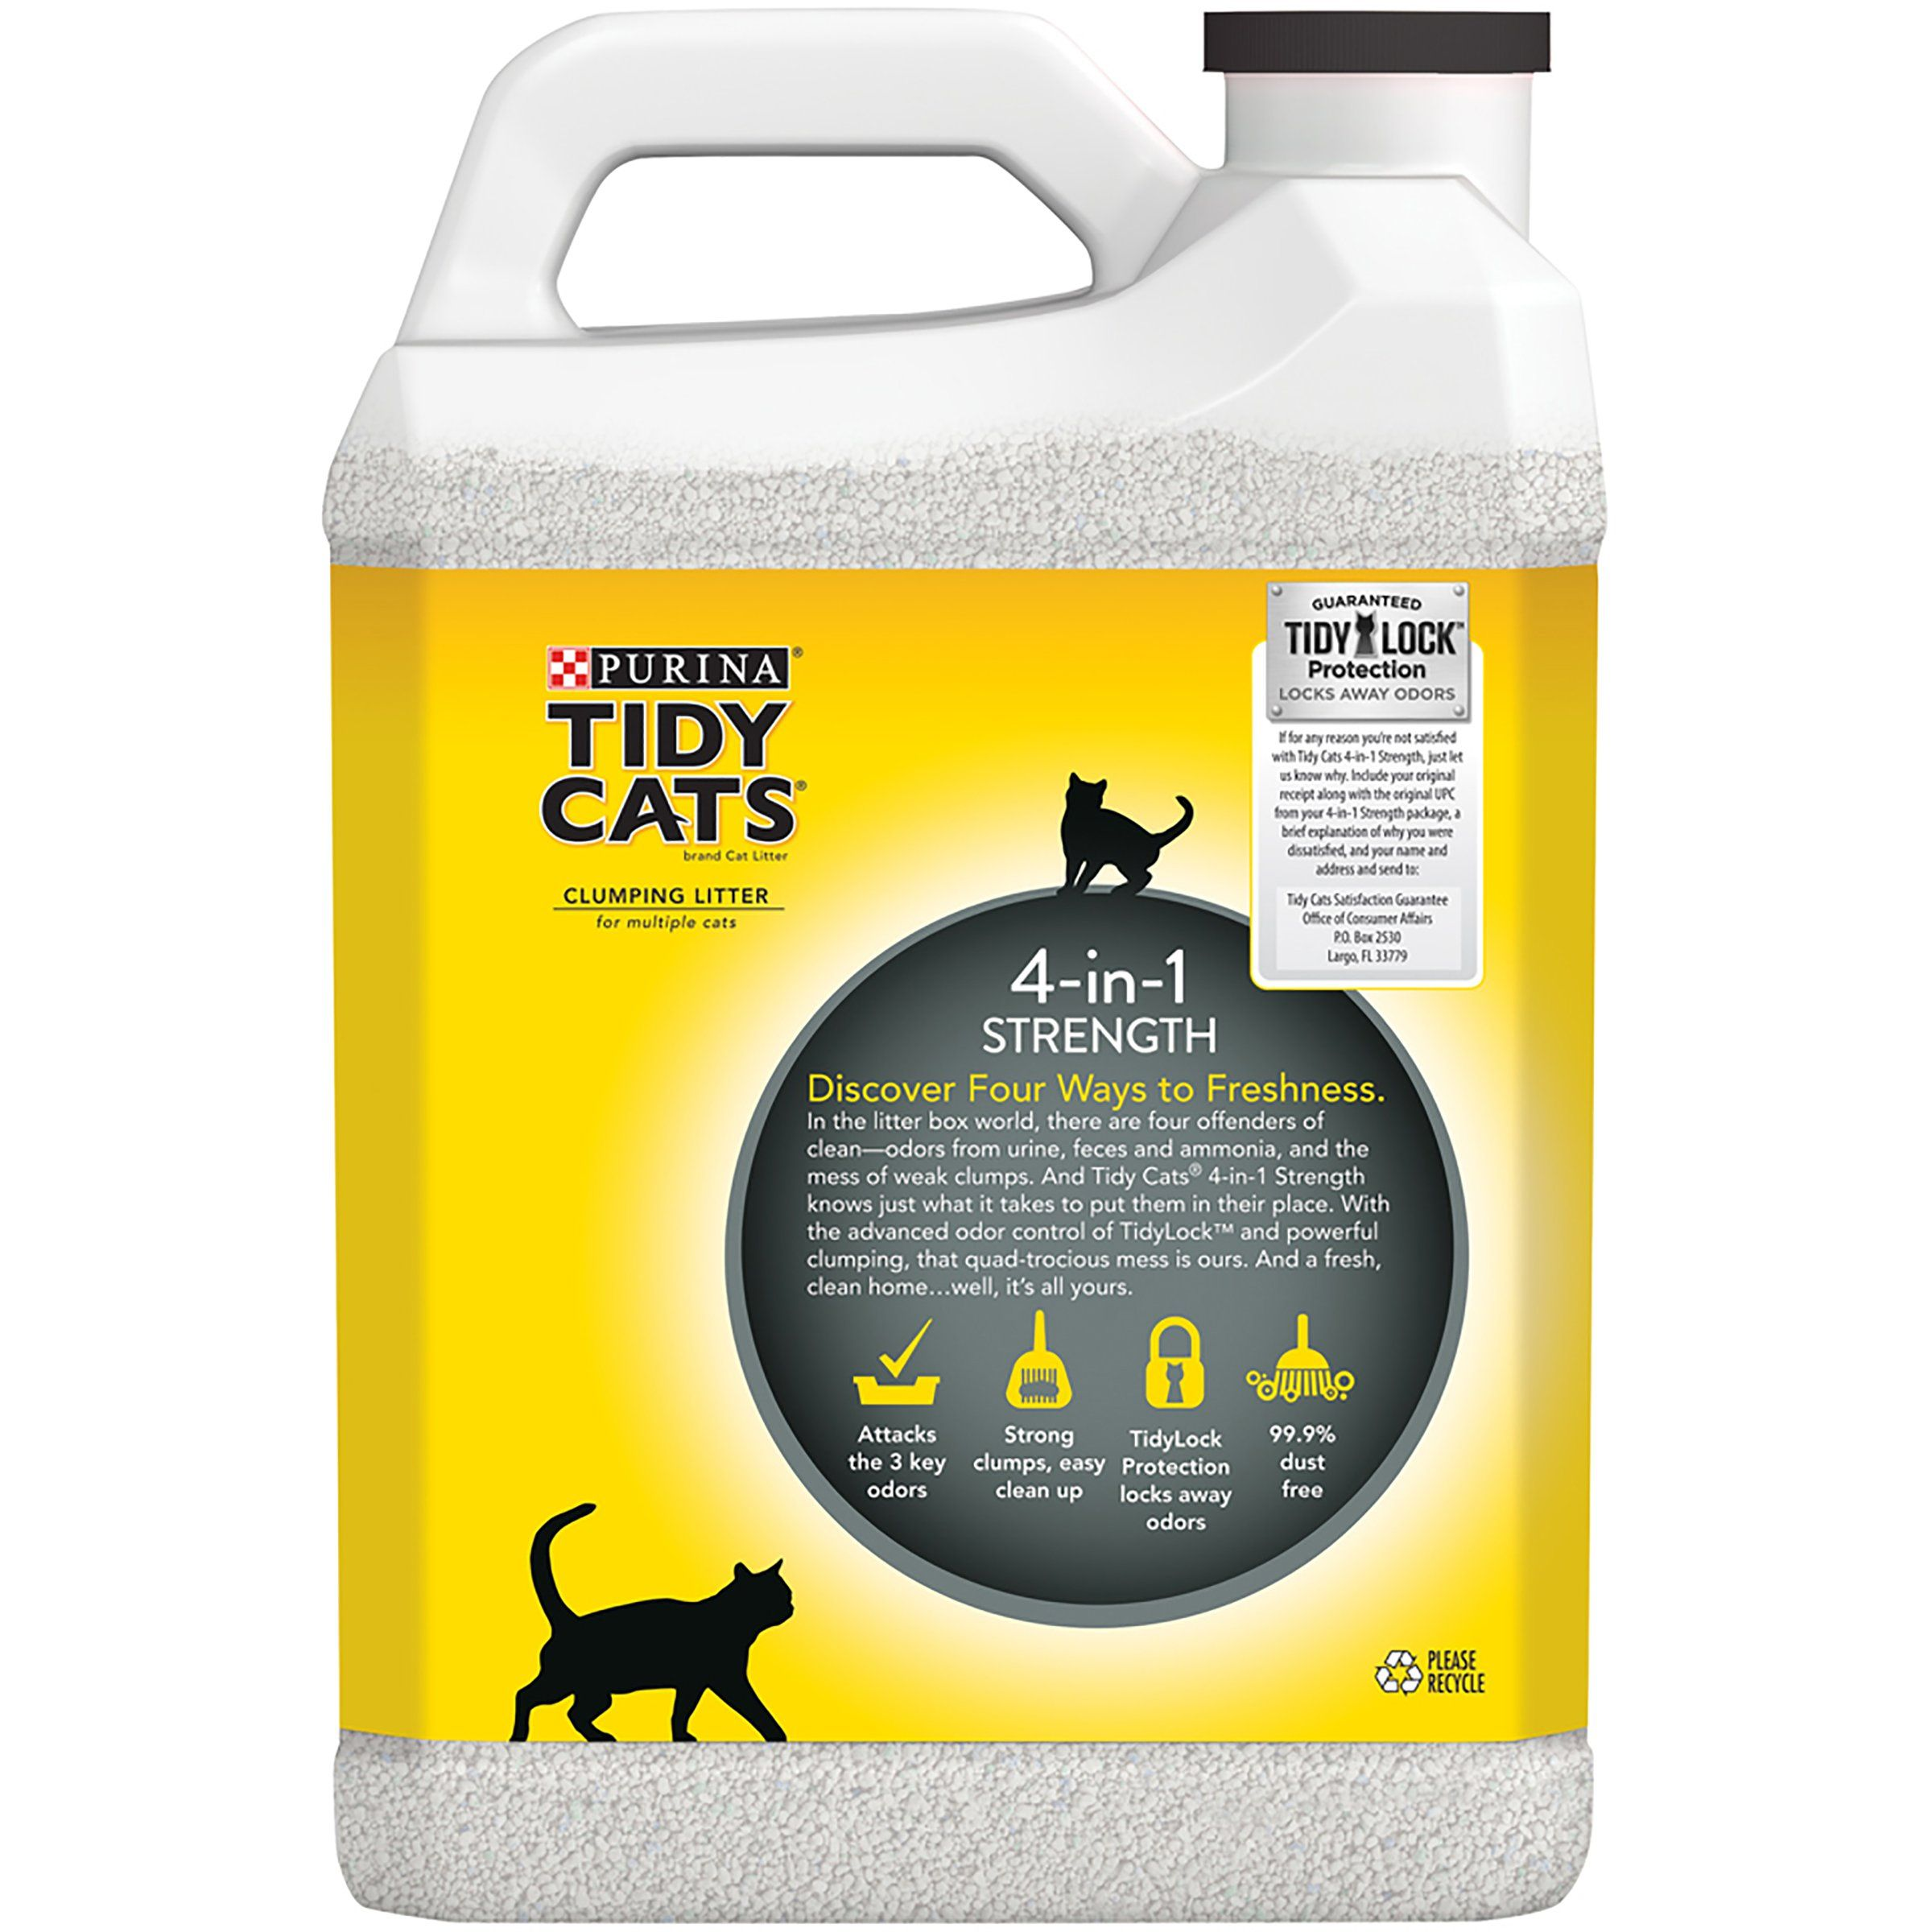 Purina Tidy Cats 4in1 Strength Clumping Cat Litter Two 2